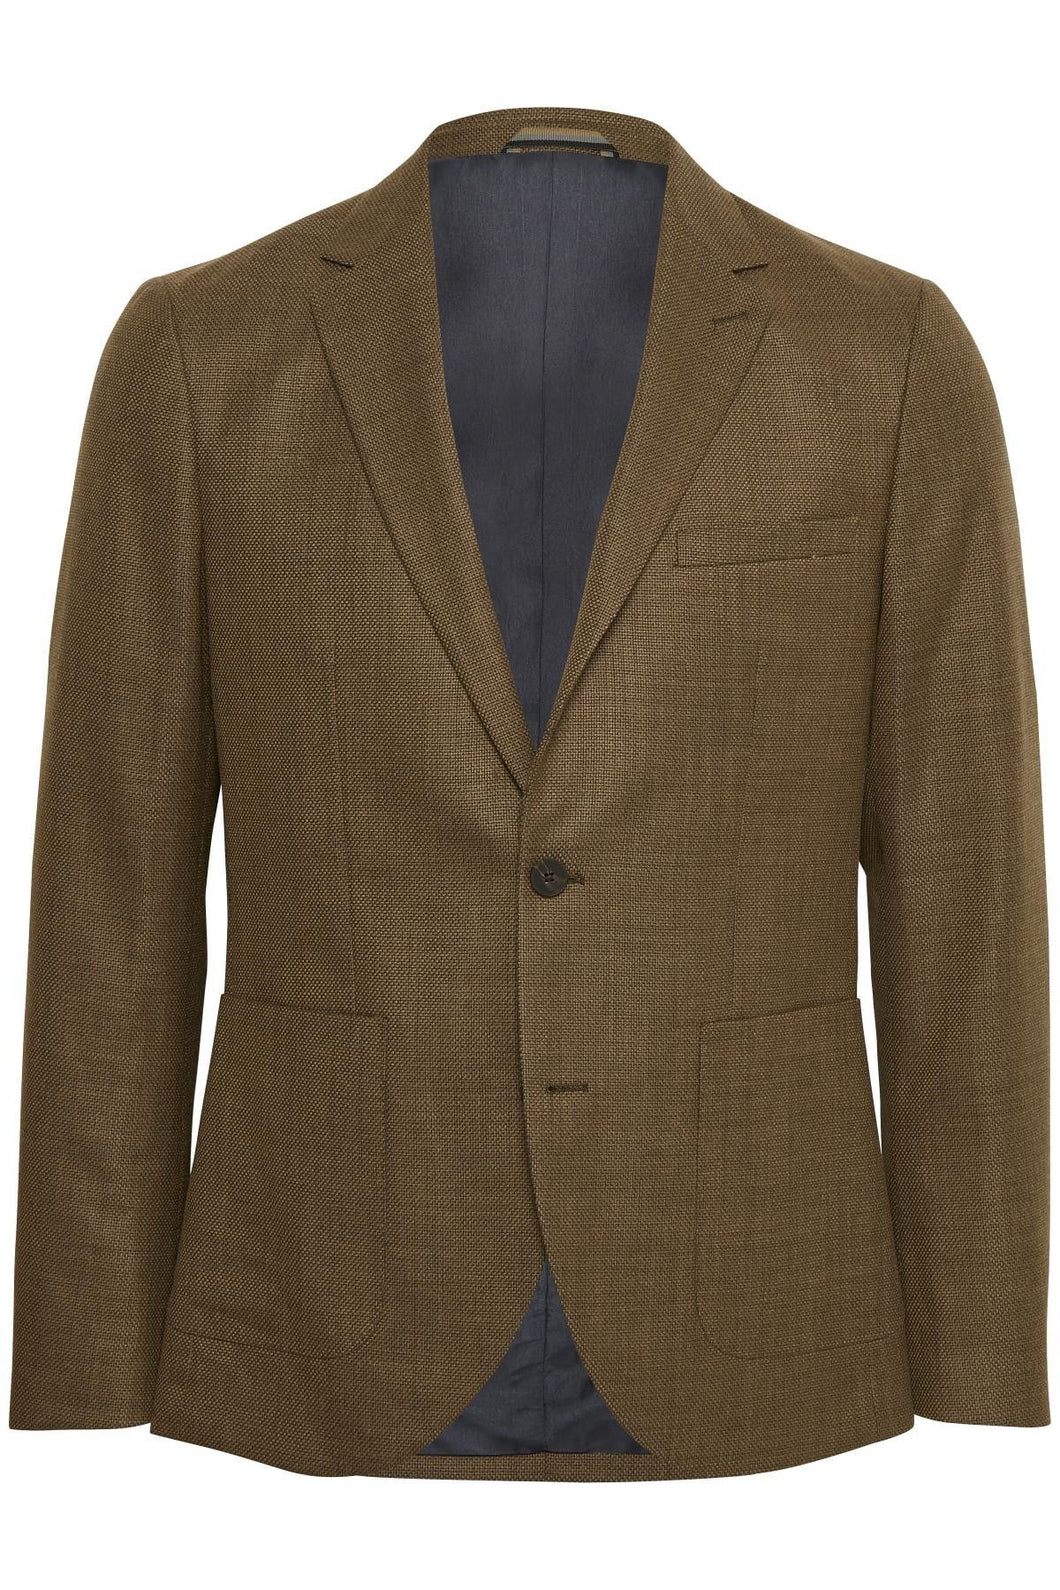 Matinique George Mens Blazer